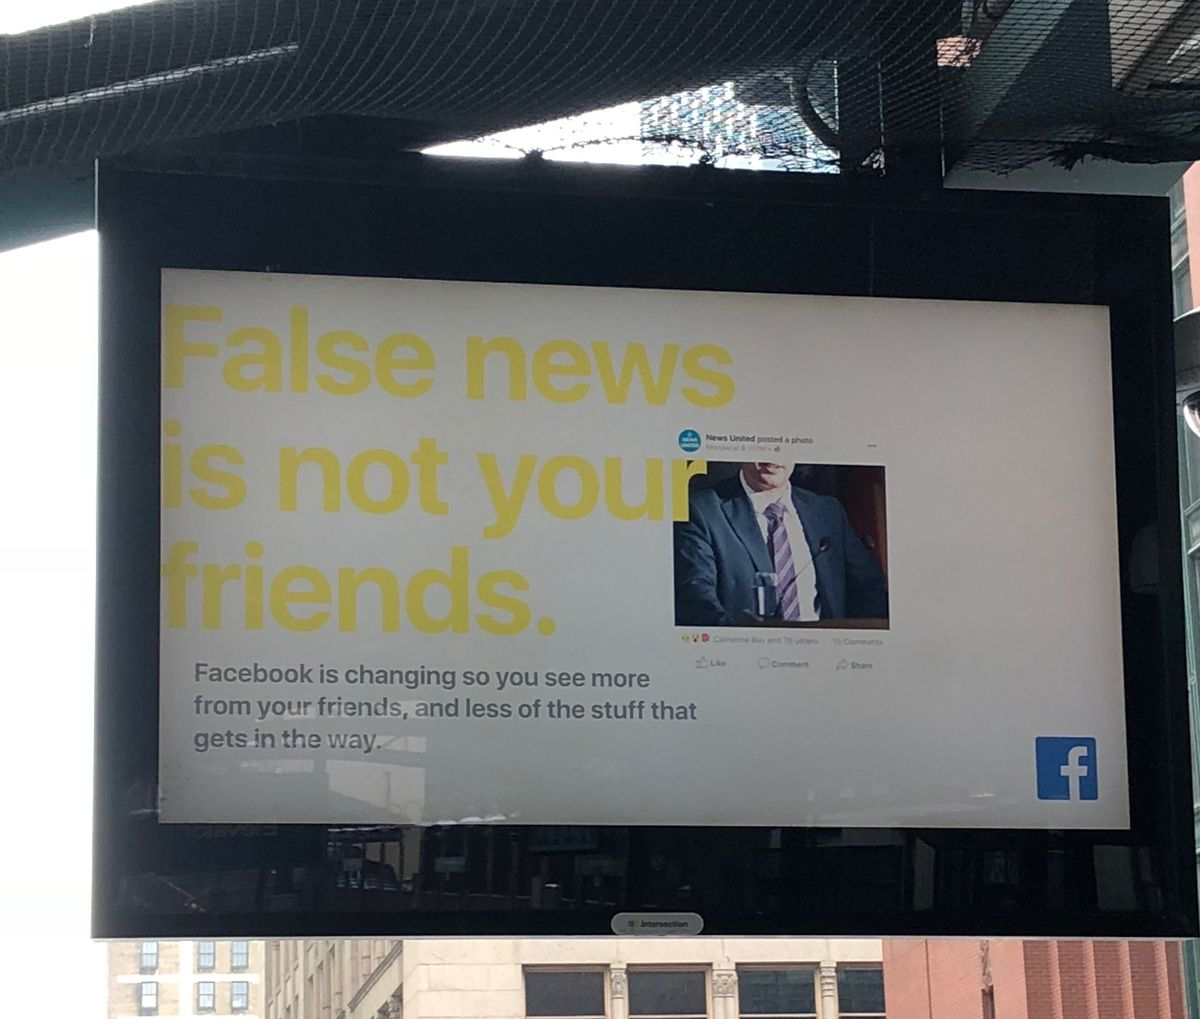 """On CTA platforms, Facebook's newest ad campaigns tell commuters """"False news is not your friends."""""""